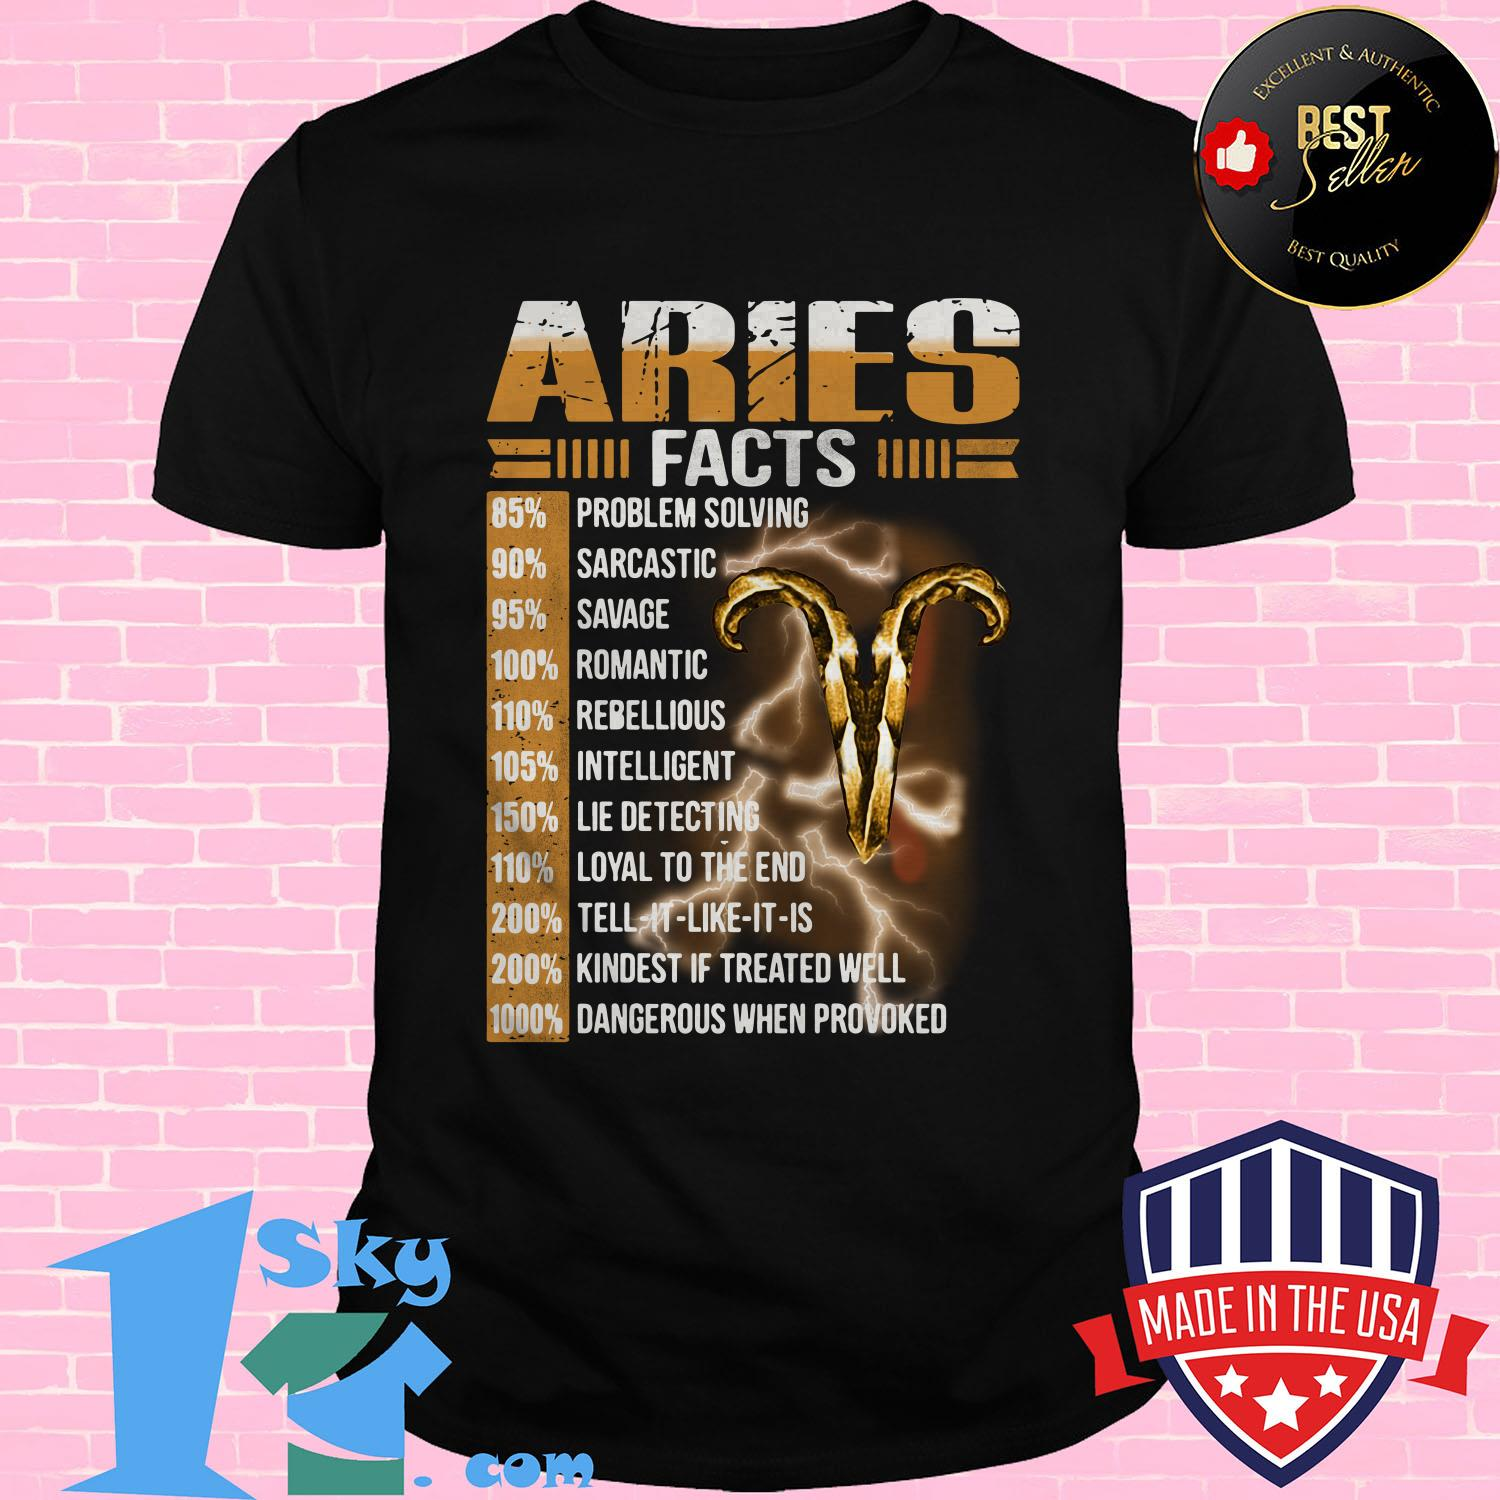 aries facts 85 problem solving 90 sarcastic 95 savage ladies tee - Aries facts 85% problem solving 90% sarcastic 95% savage shirt